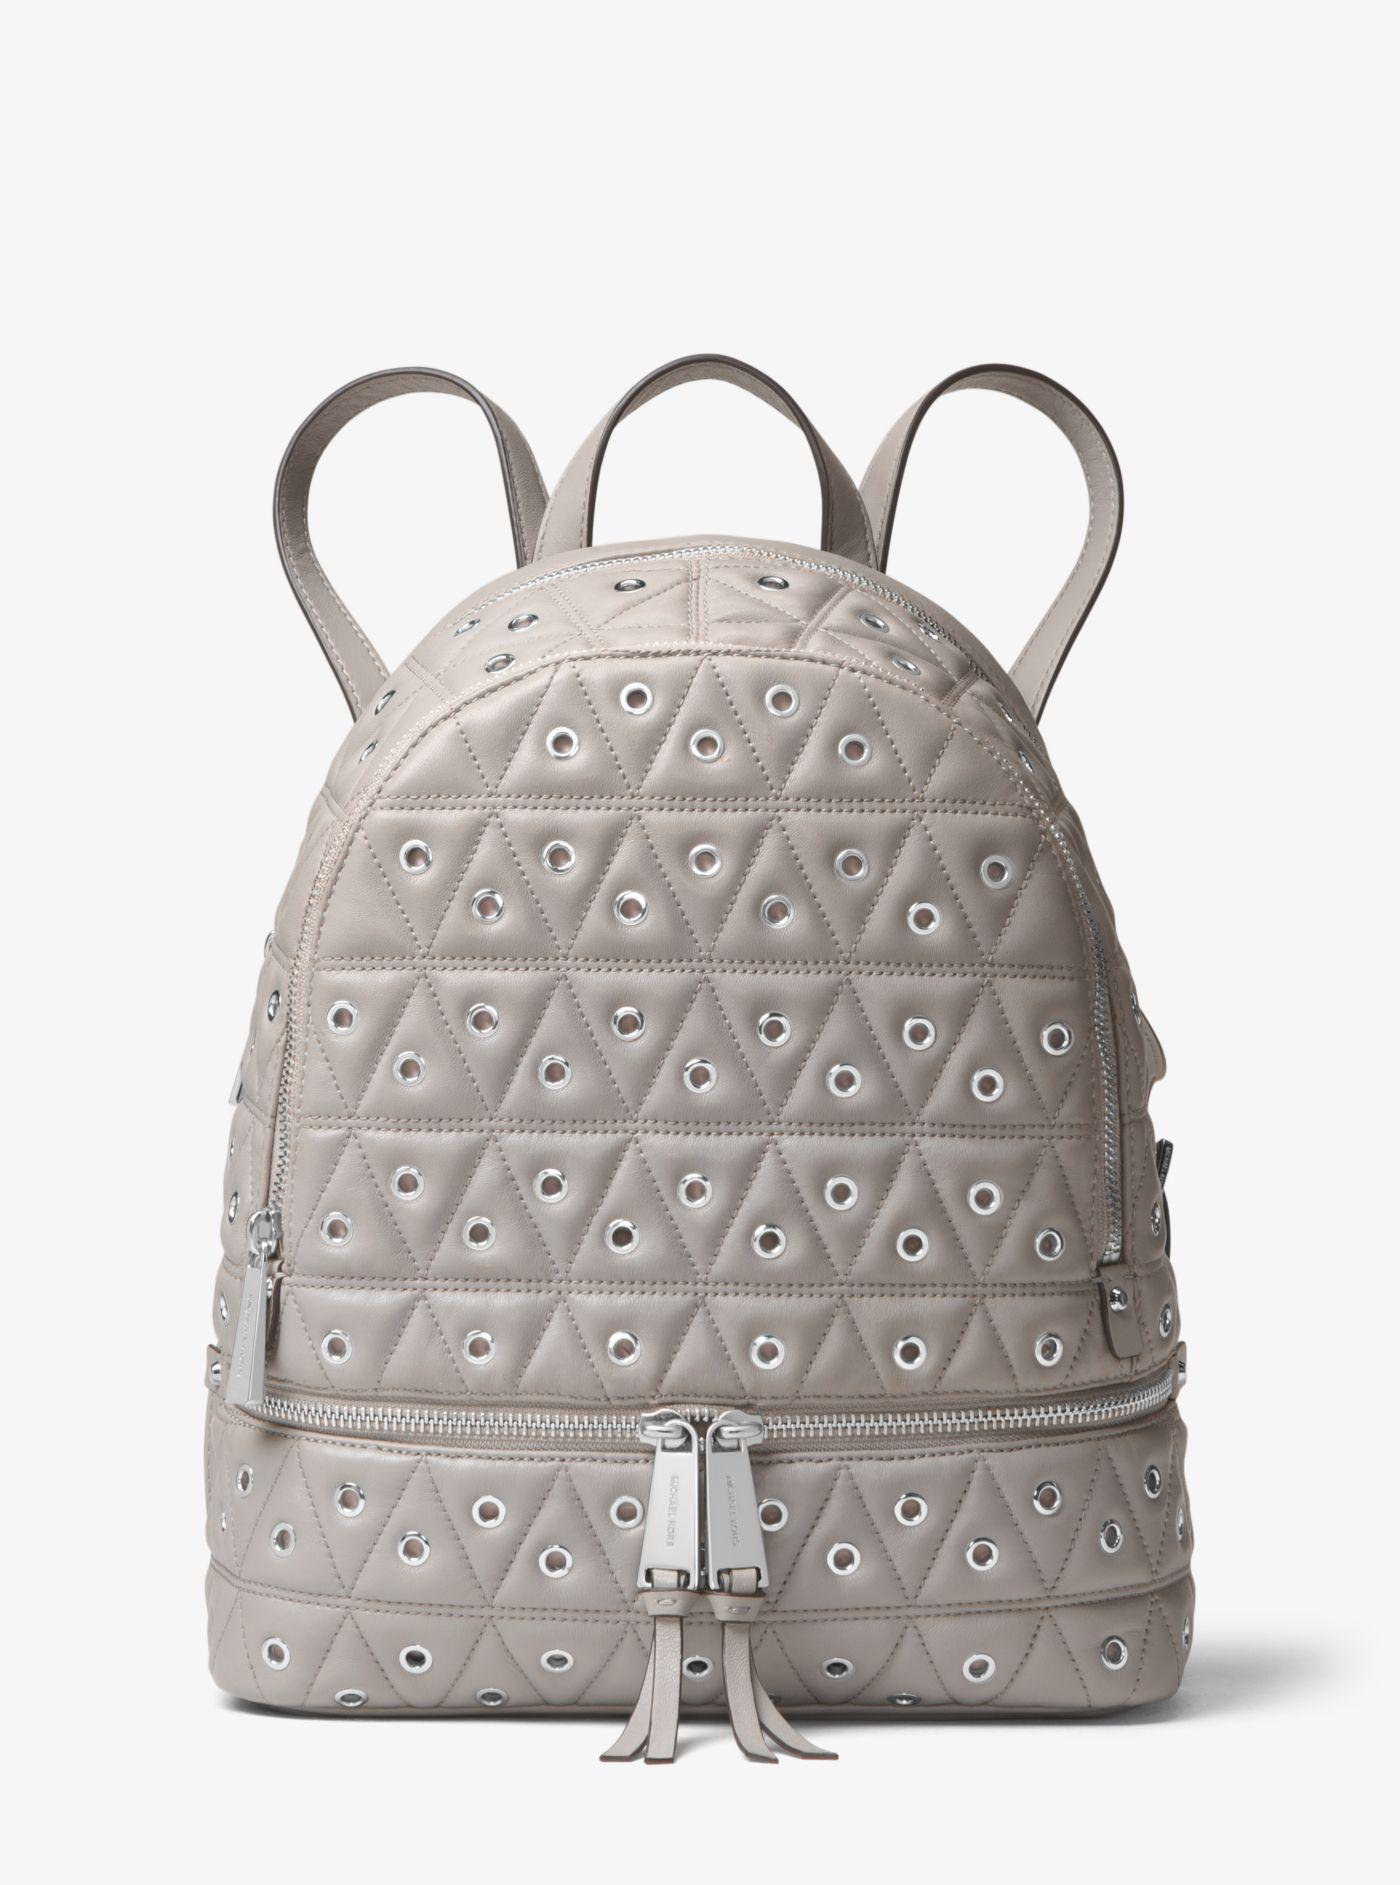 a846e33b0dc10 Lyst - Michael Kors Rhea Medium Grommeted Leather Backpack in Gray